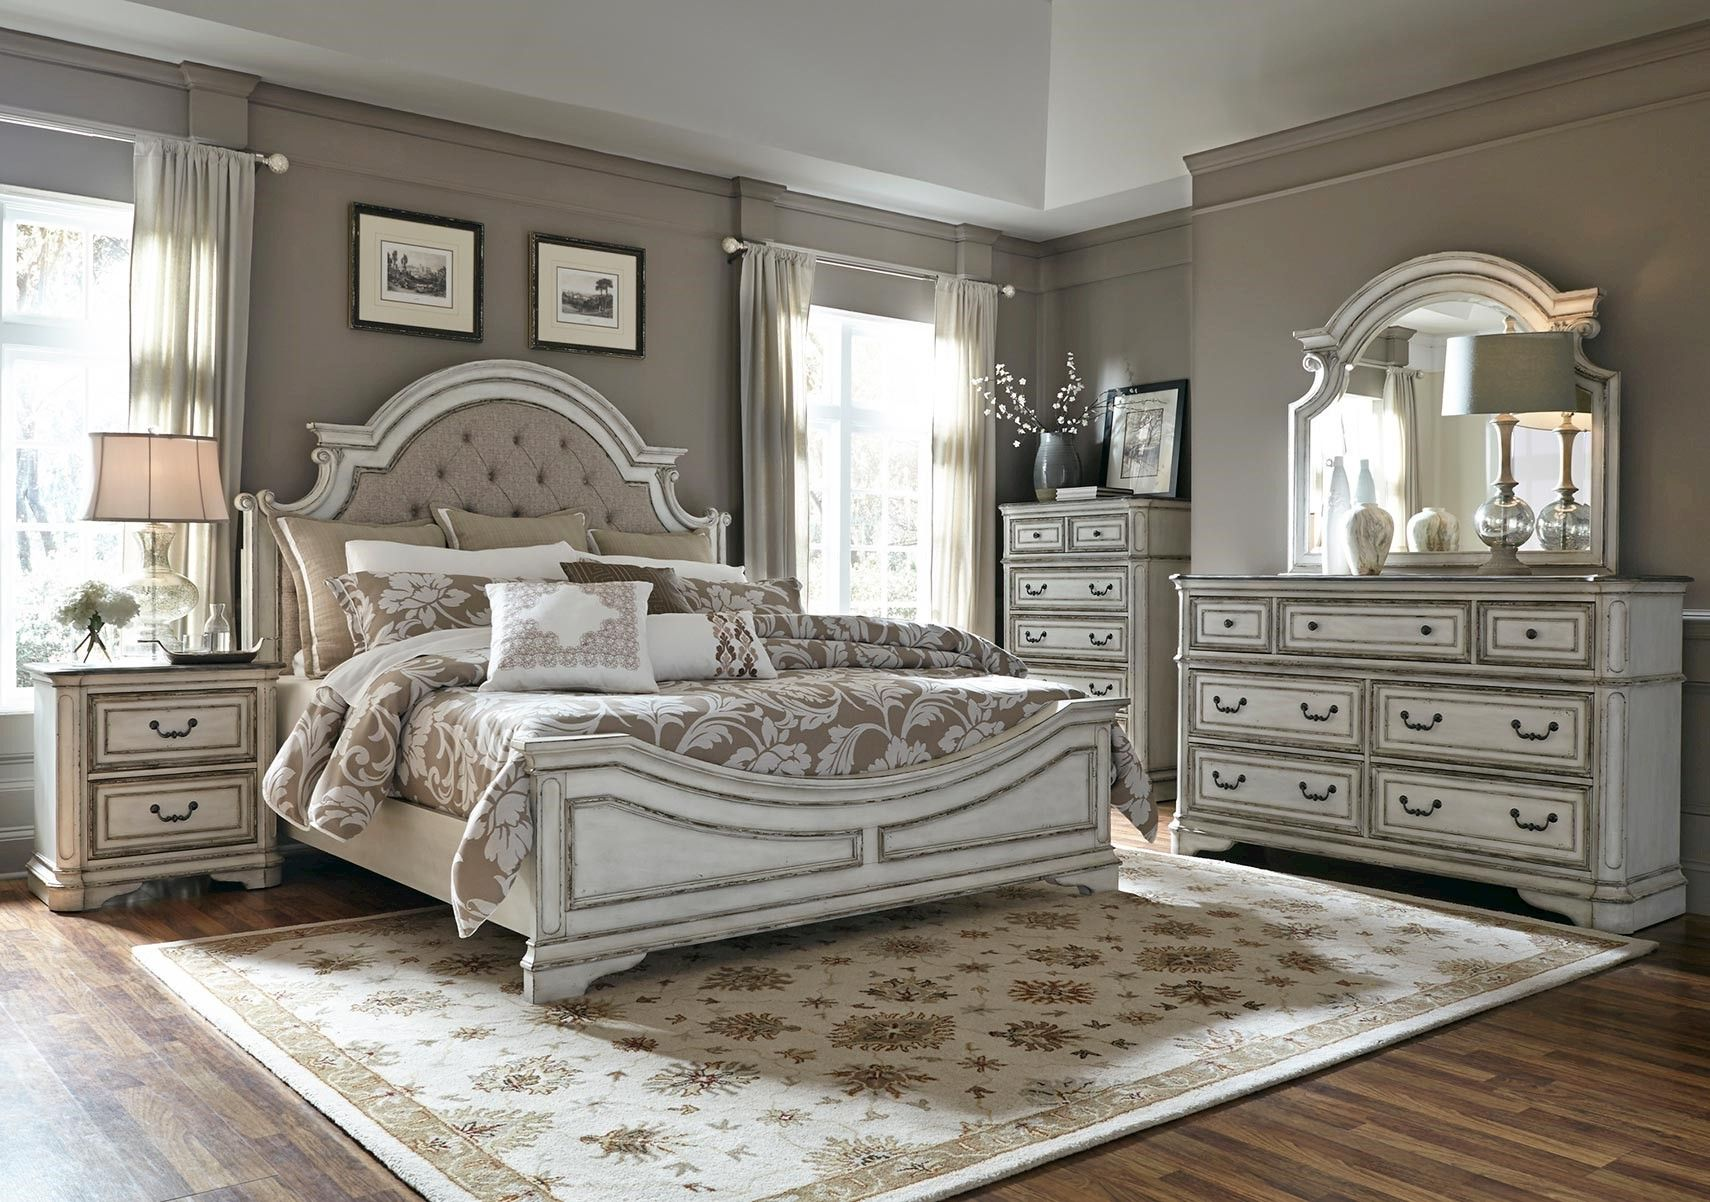 Lacks Magnolia Manor 4 Pc Queen Bedroom Set With Images